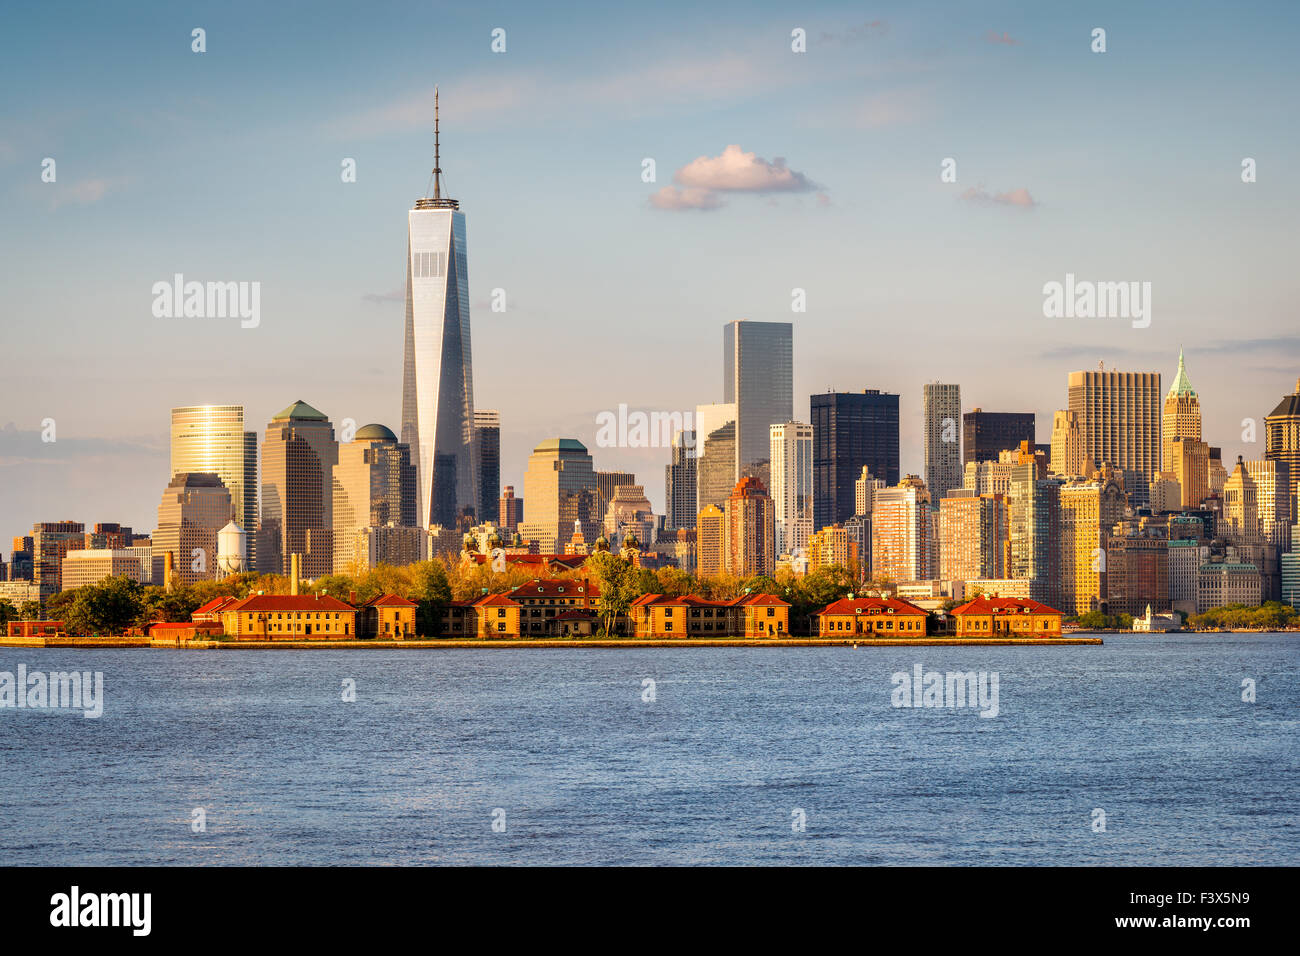 Hafen von New York Blick auf die World Trade Center und Lower Manhattan mit Financial District Wolkenkratzer und Stockbild